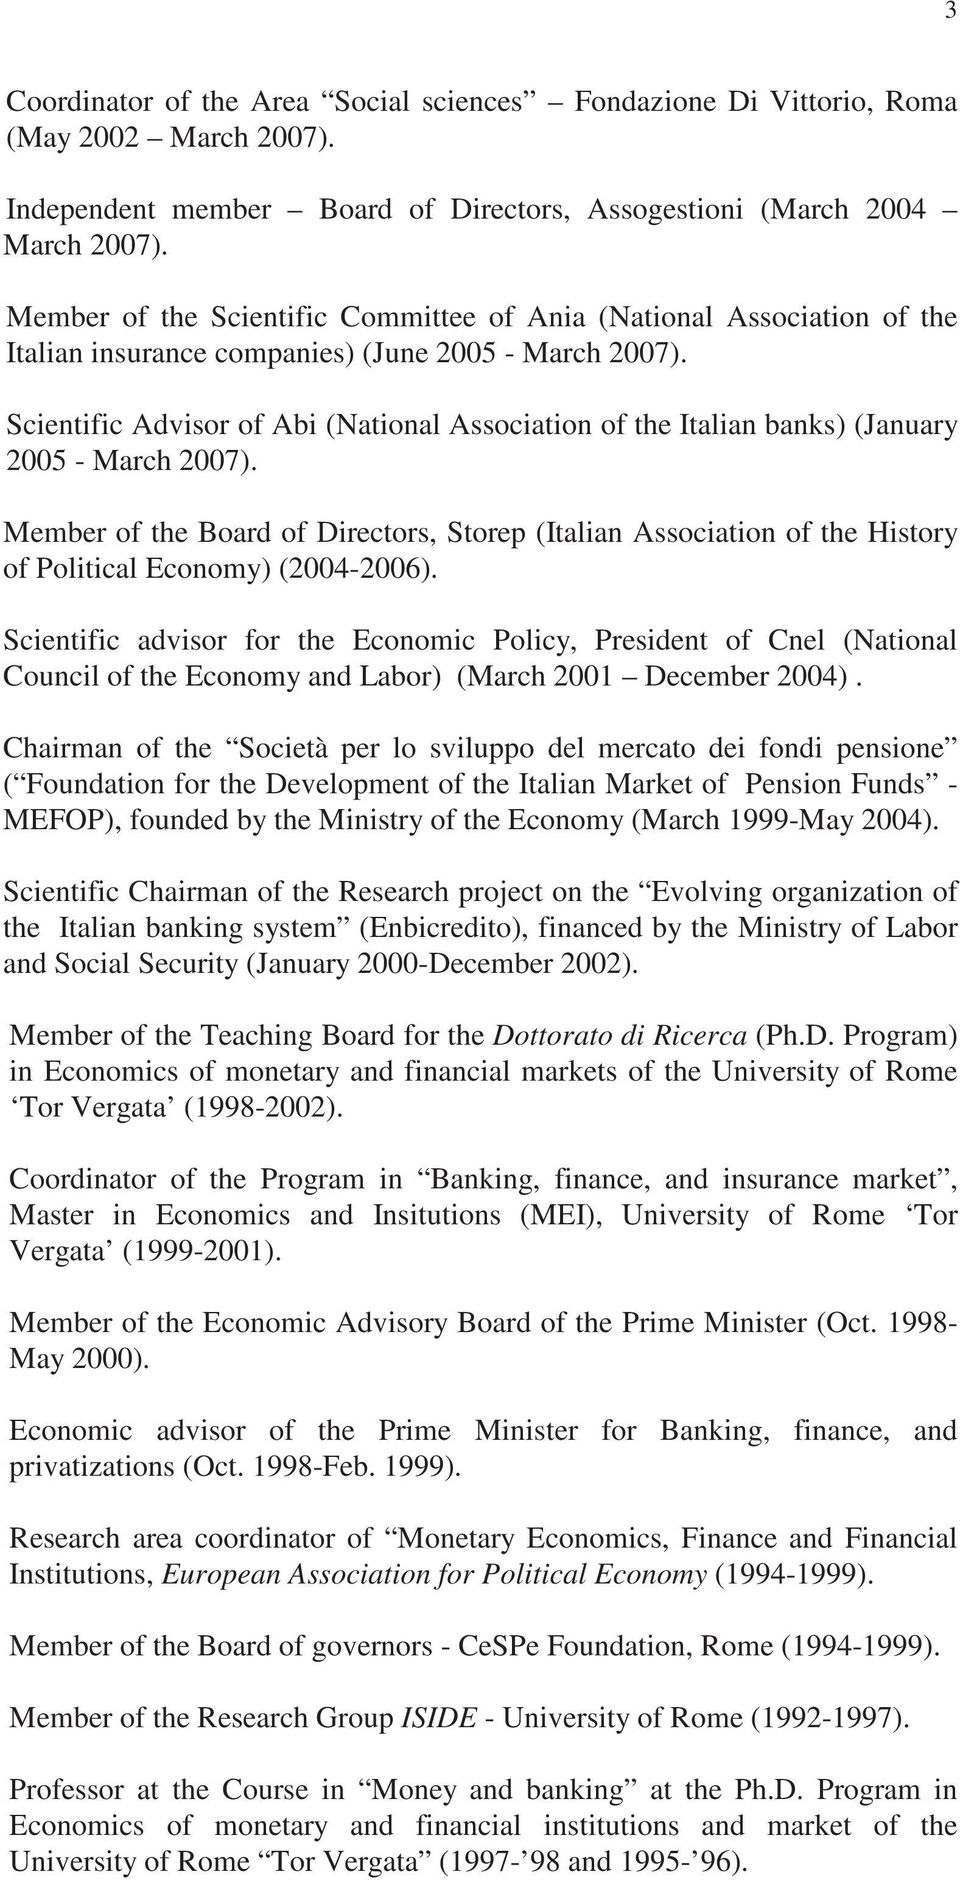 Scientific Advisor of Abi (National Association of the Italian banks) (January 2005 - March 2007).